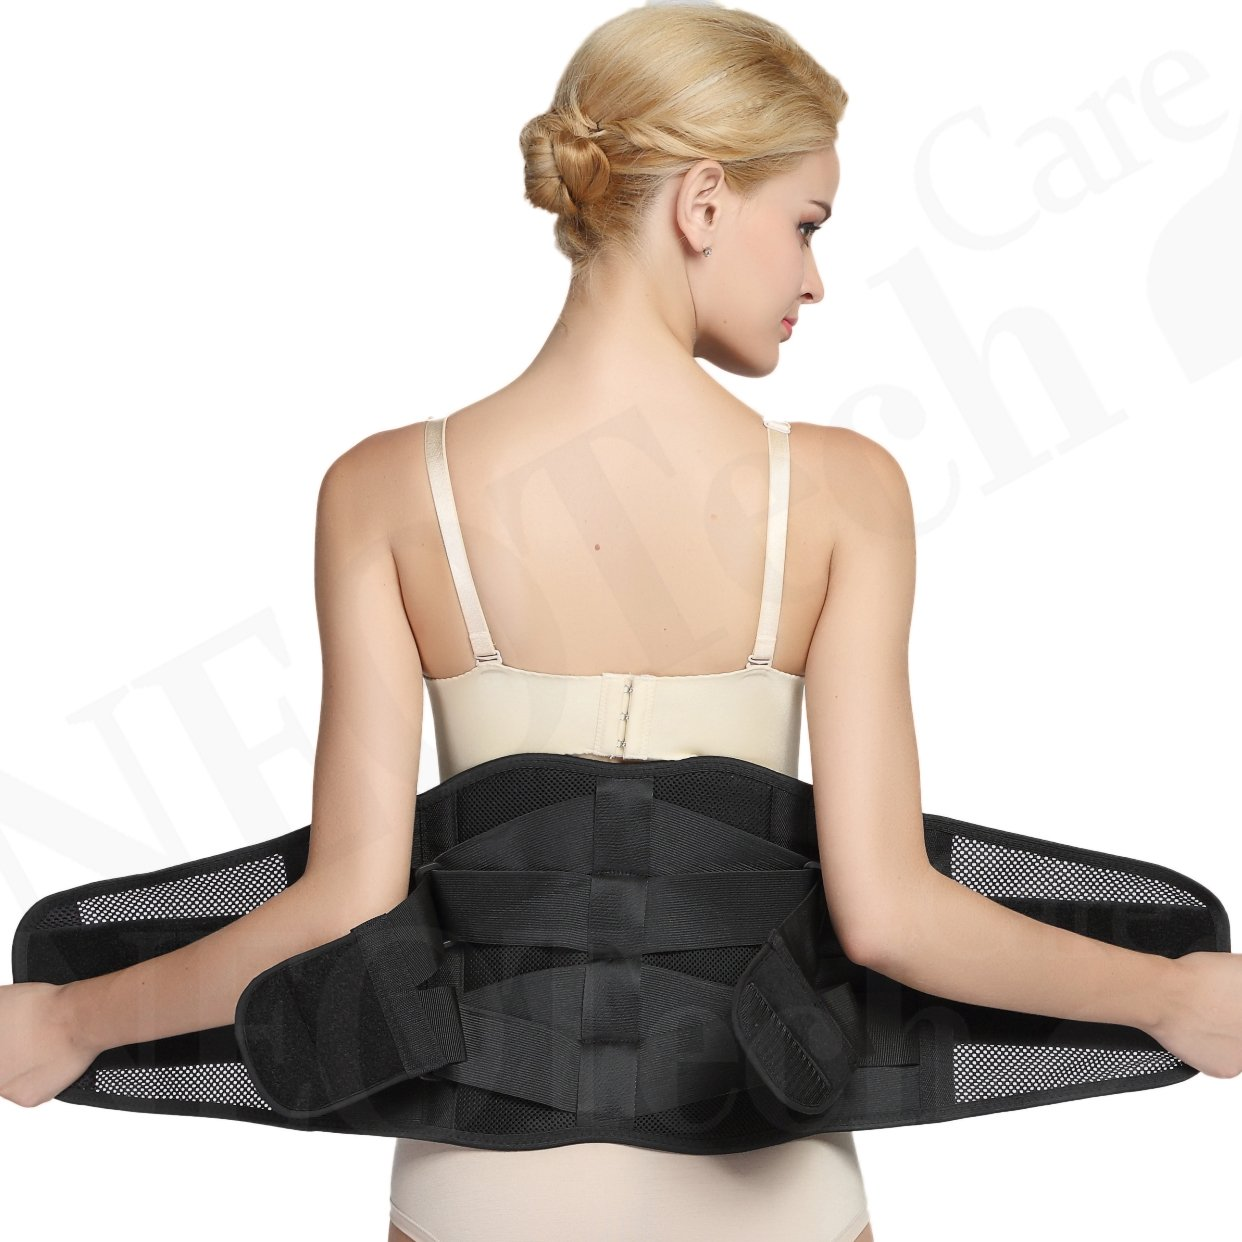 Adjustable Double Pull Lumbar Brace/Lower Back Belt, Pain Relief - Breathable & Lightweight Material - WIDE Support - for Lifting, Work, Gym, Posture - Black - Size L